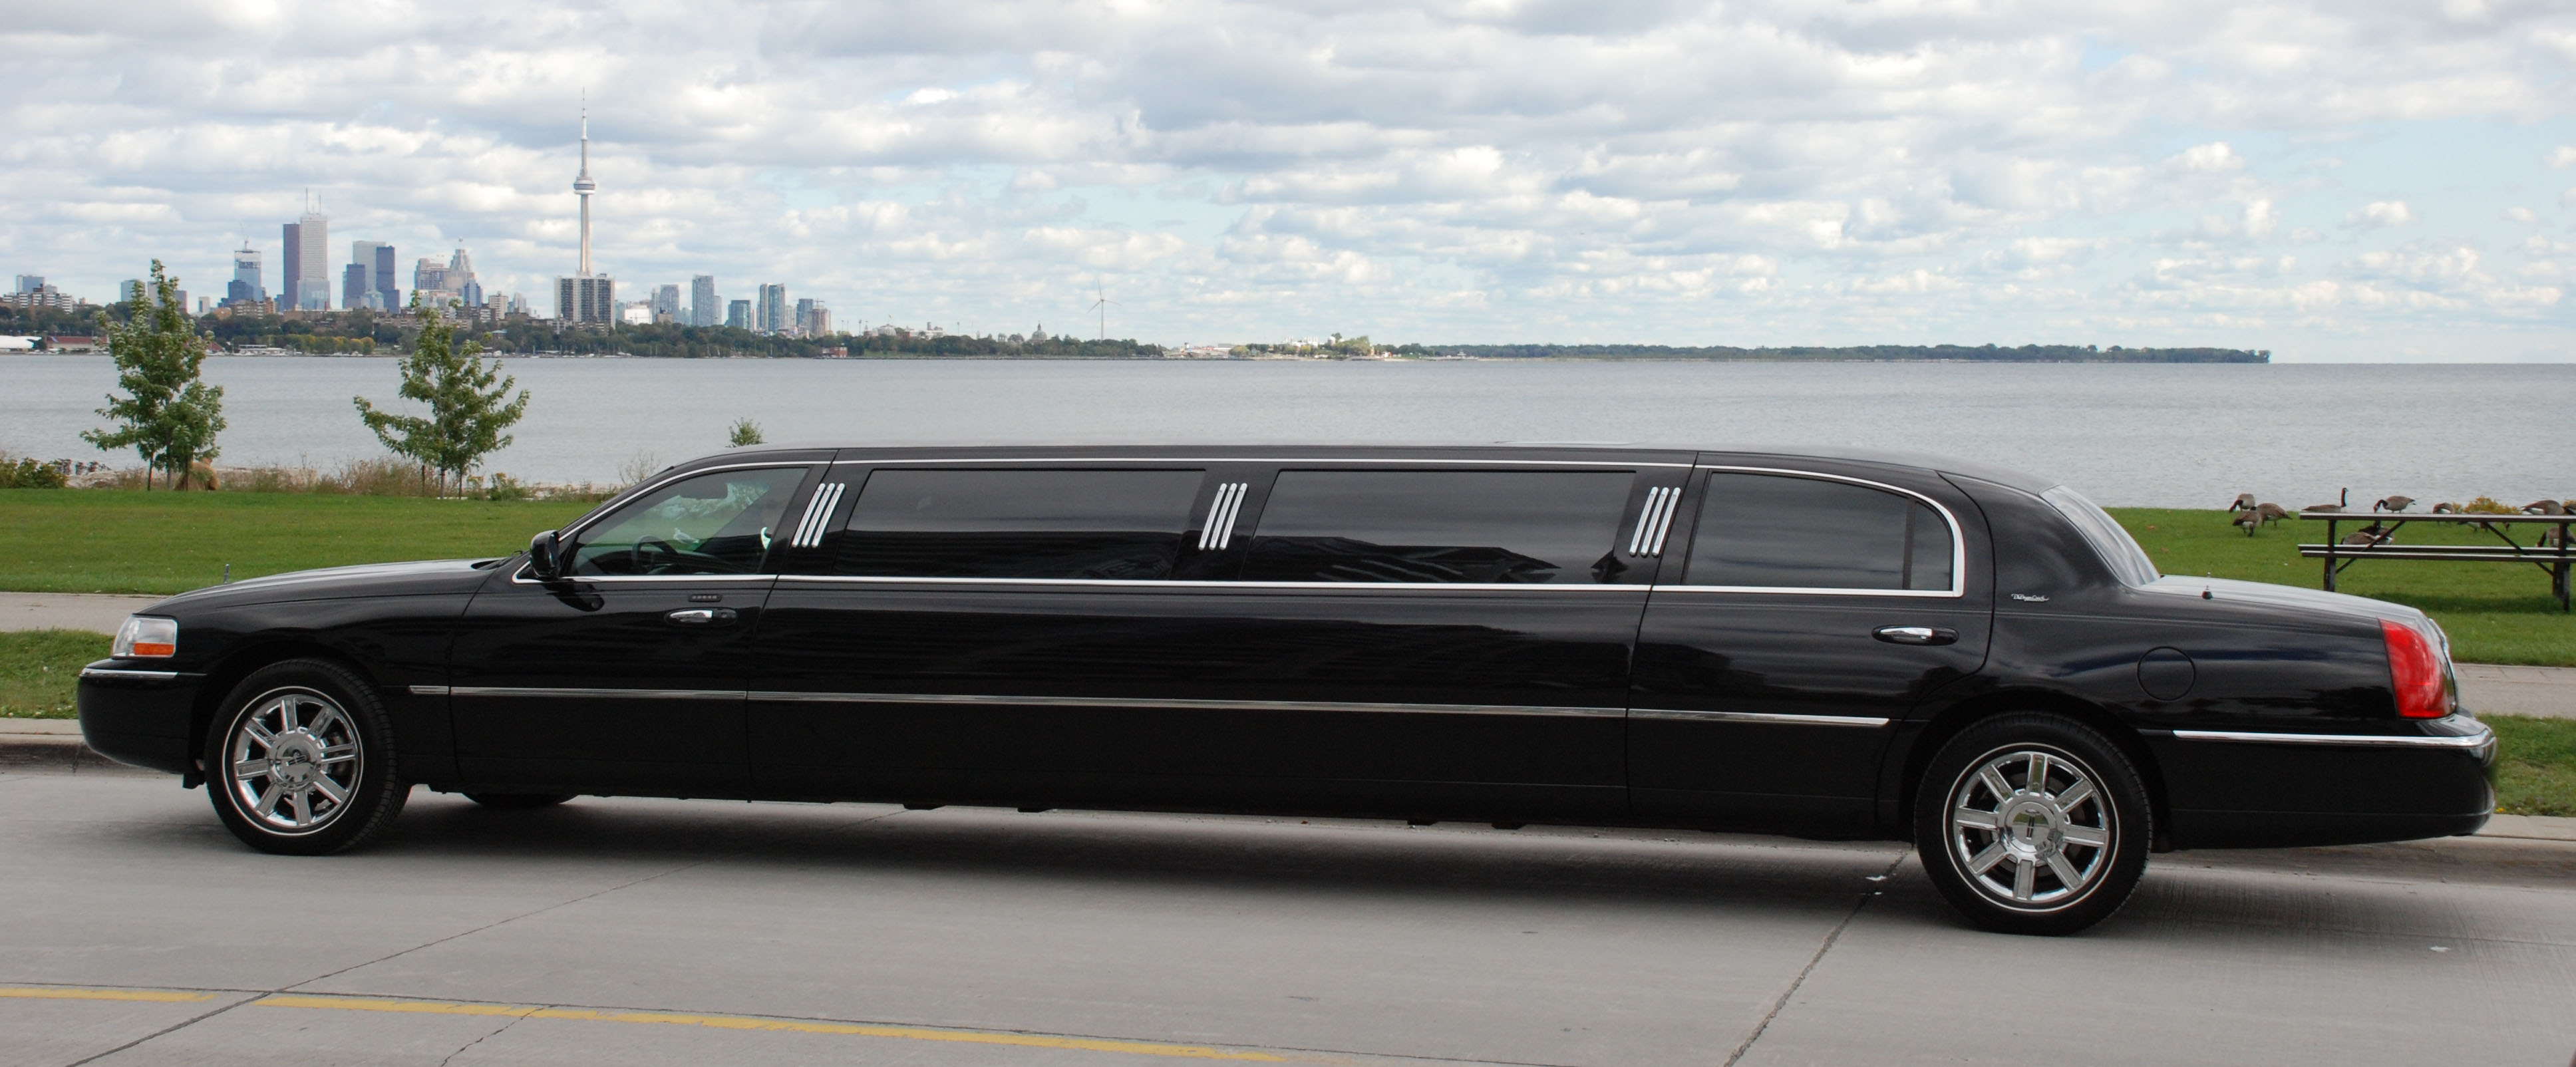 Limousine: Everything Is More Pimp When Stretched, Even A Tesla!